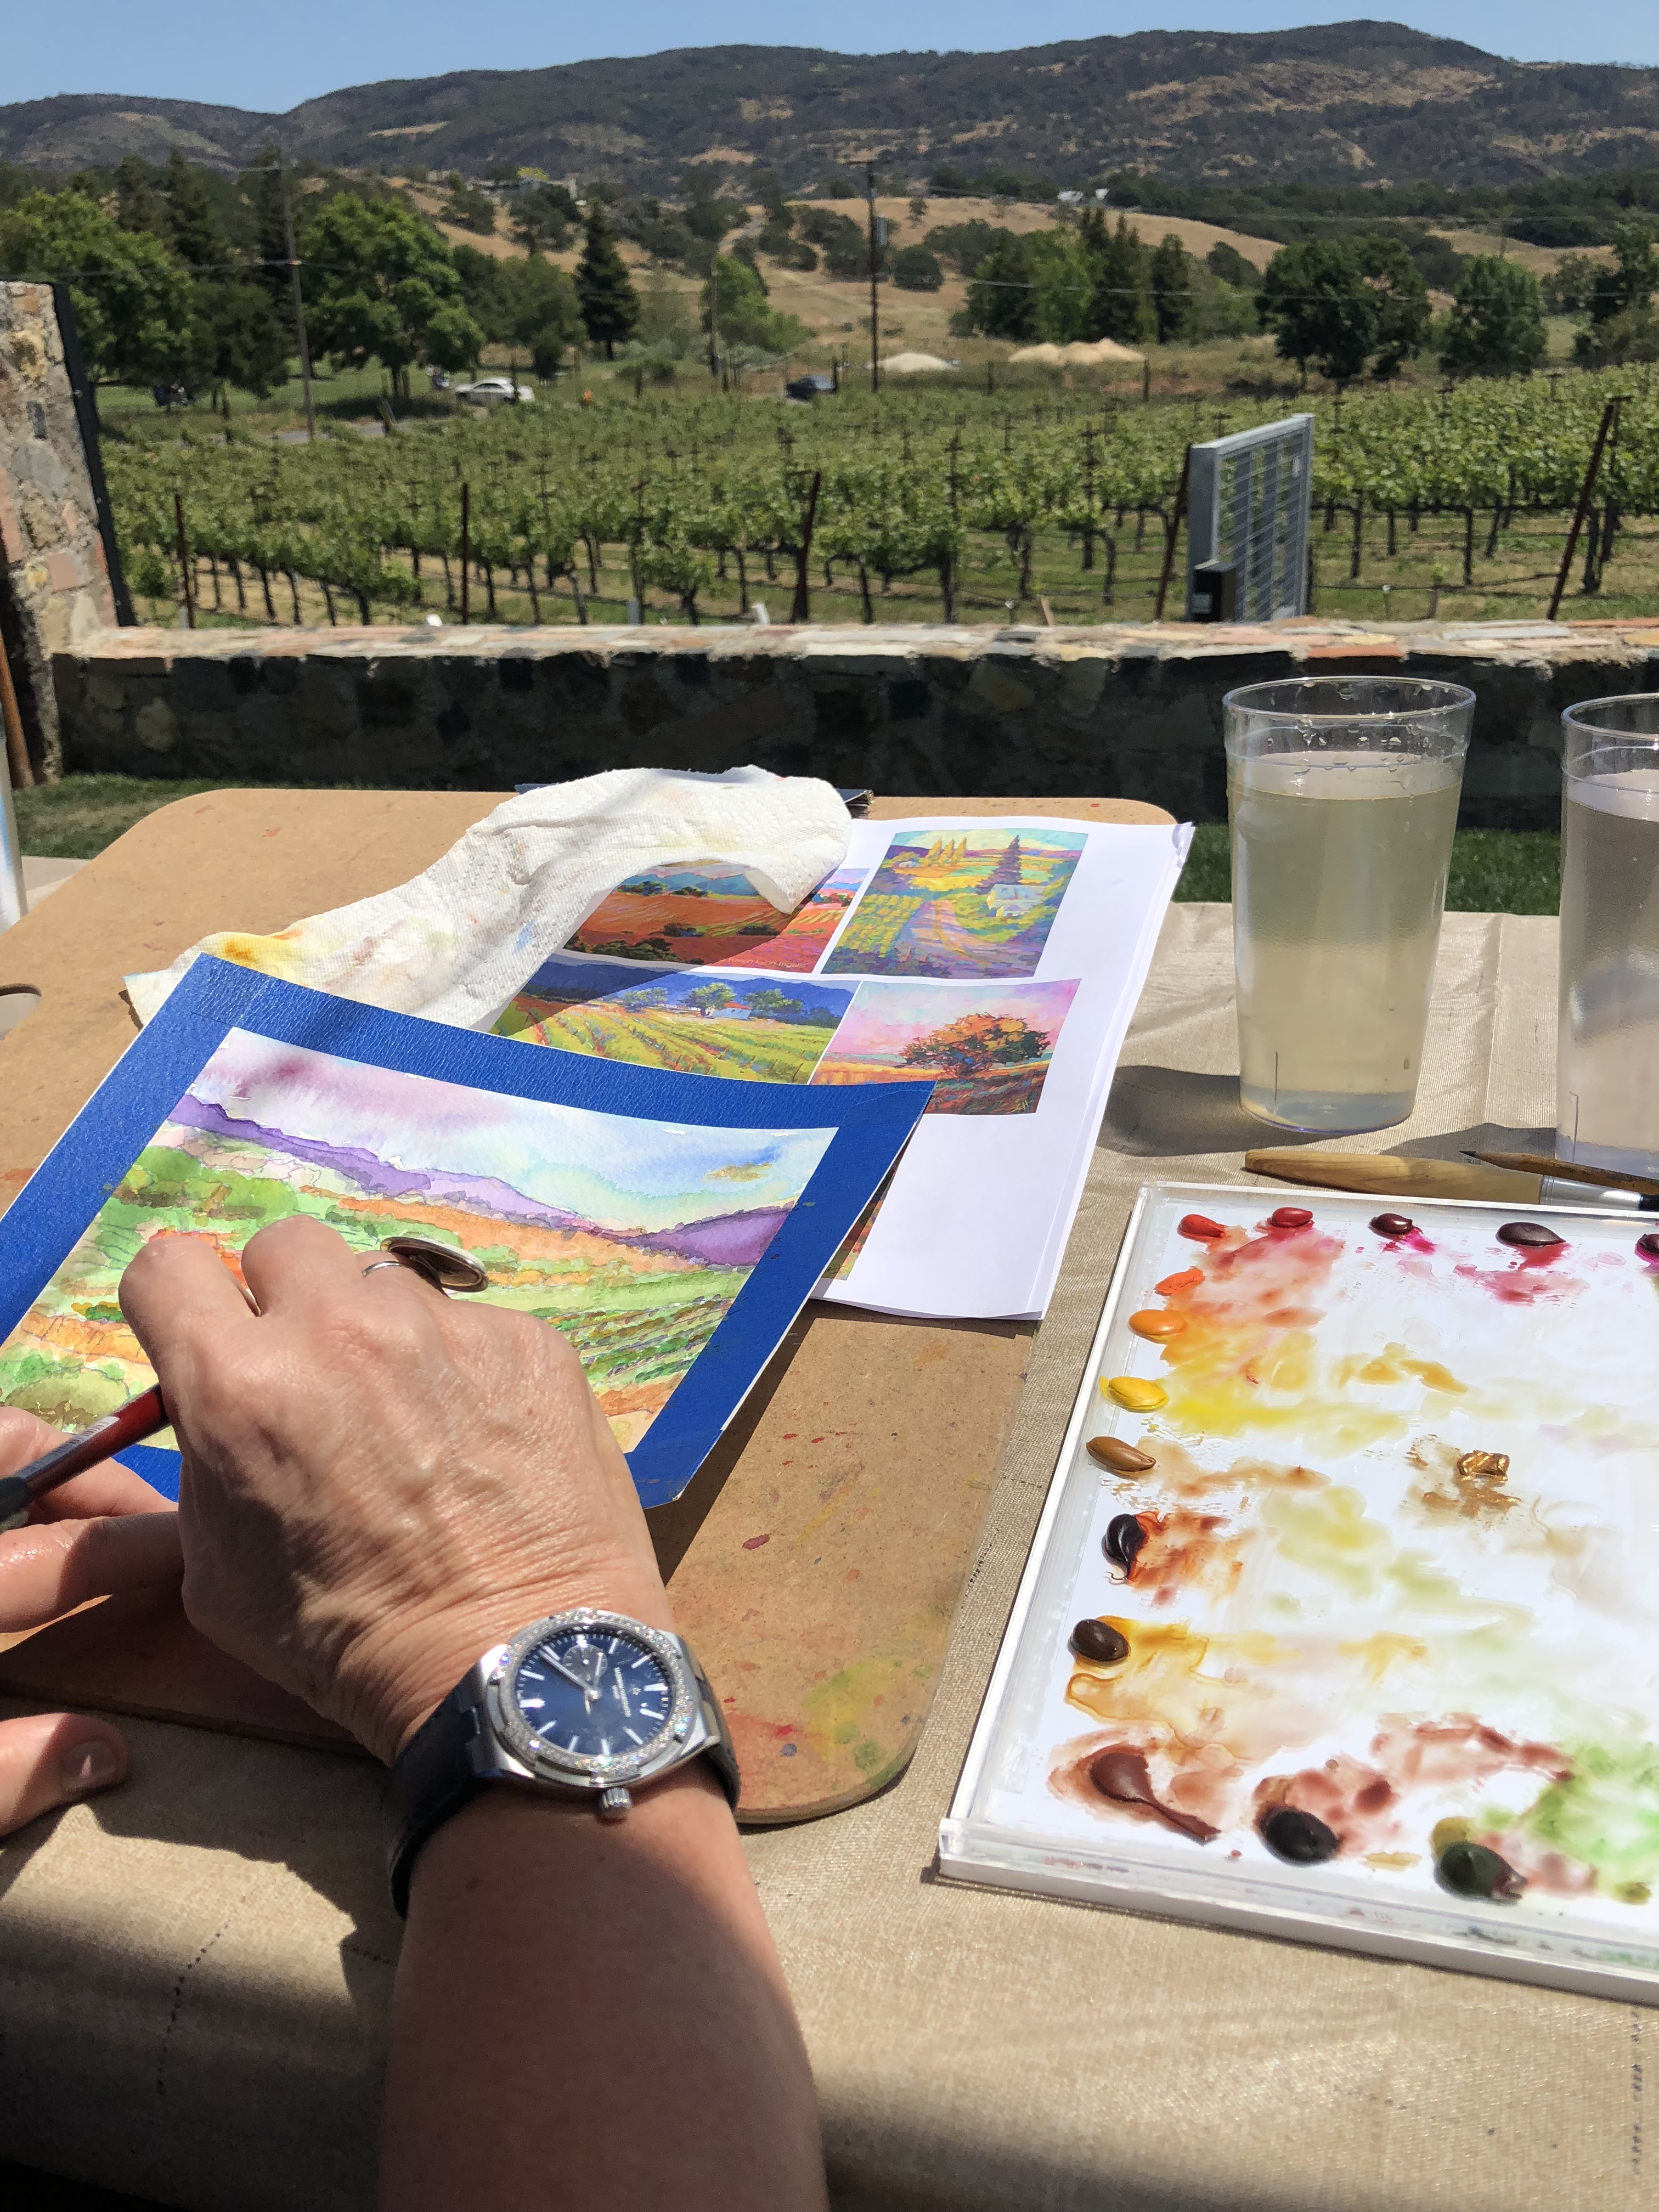 Painting in style with a Vacheron Constantin Overseas watch